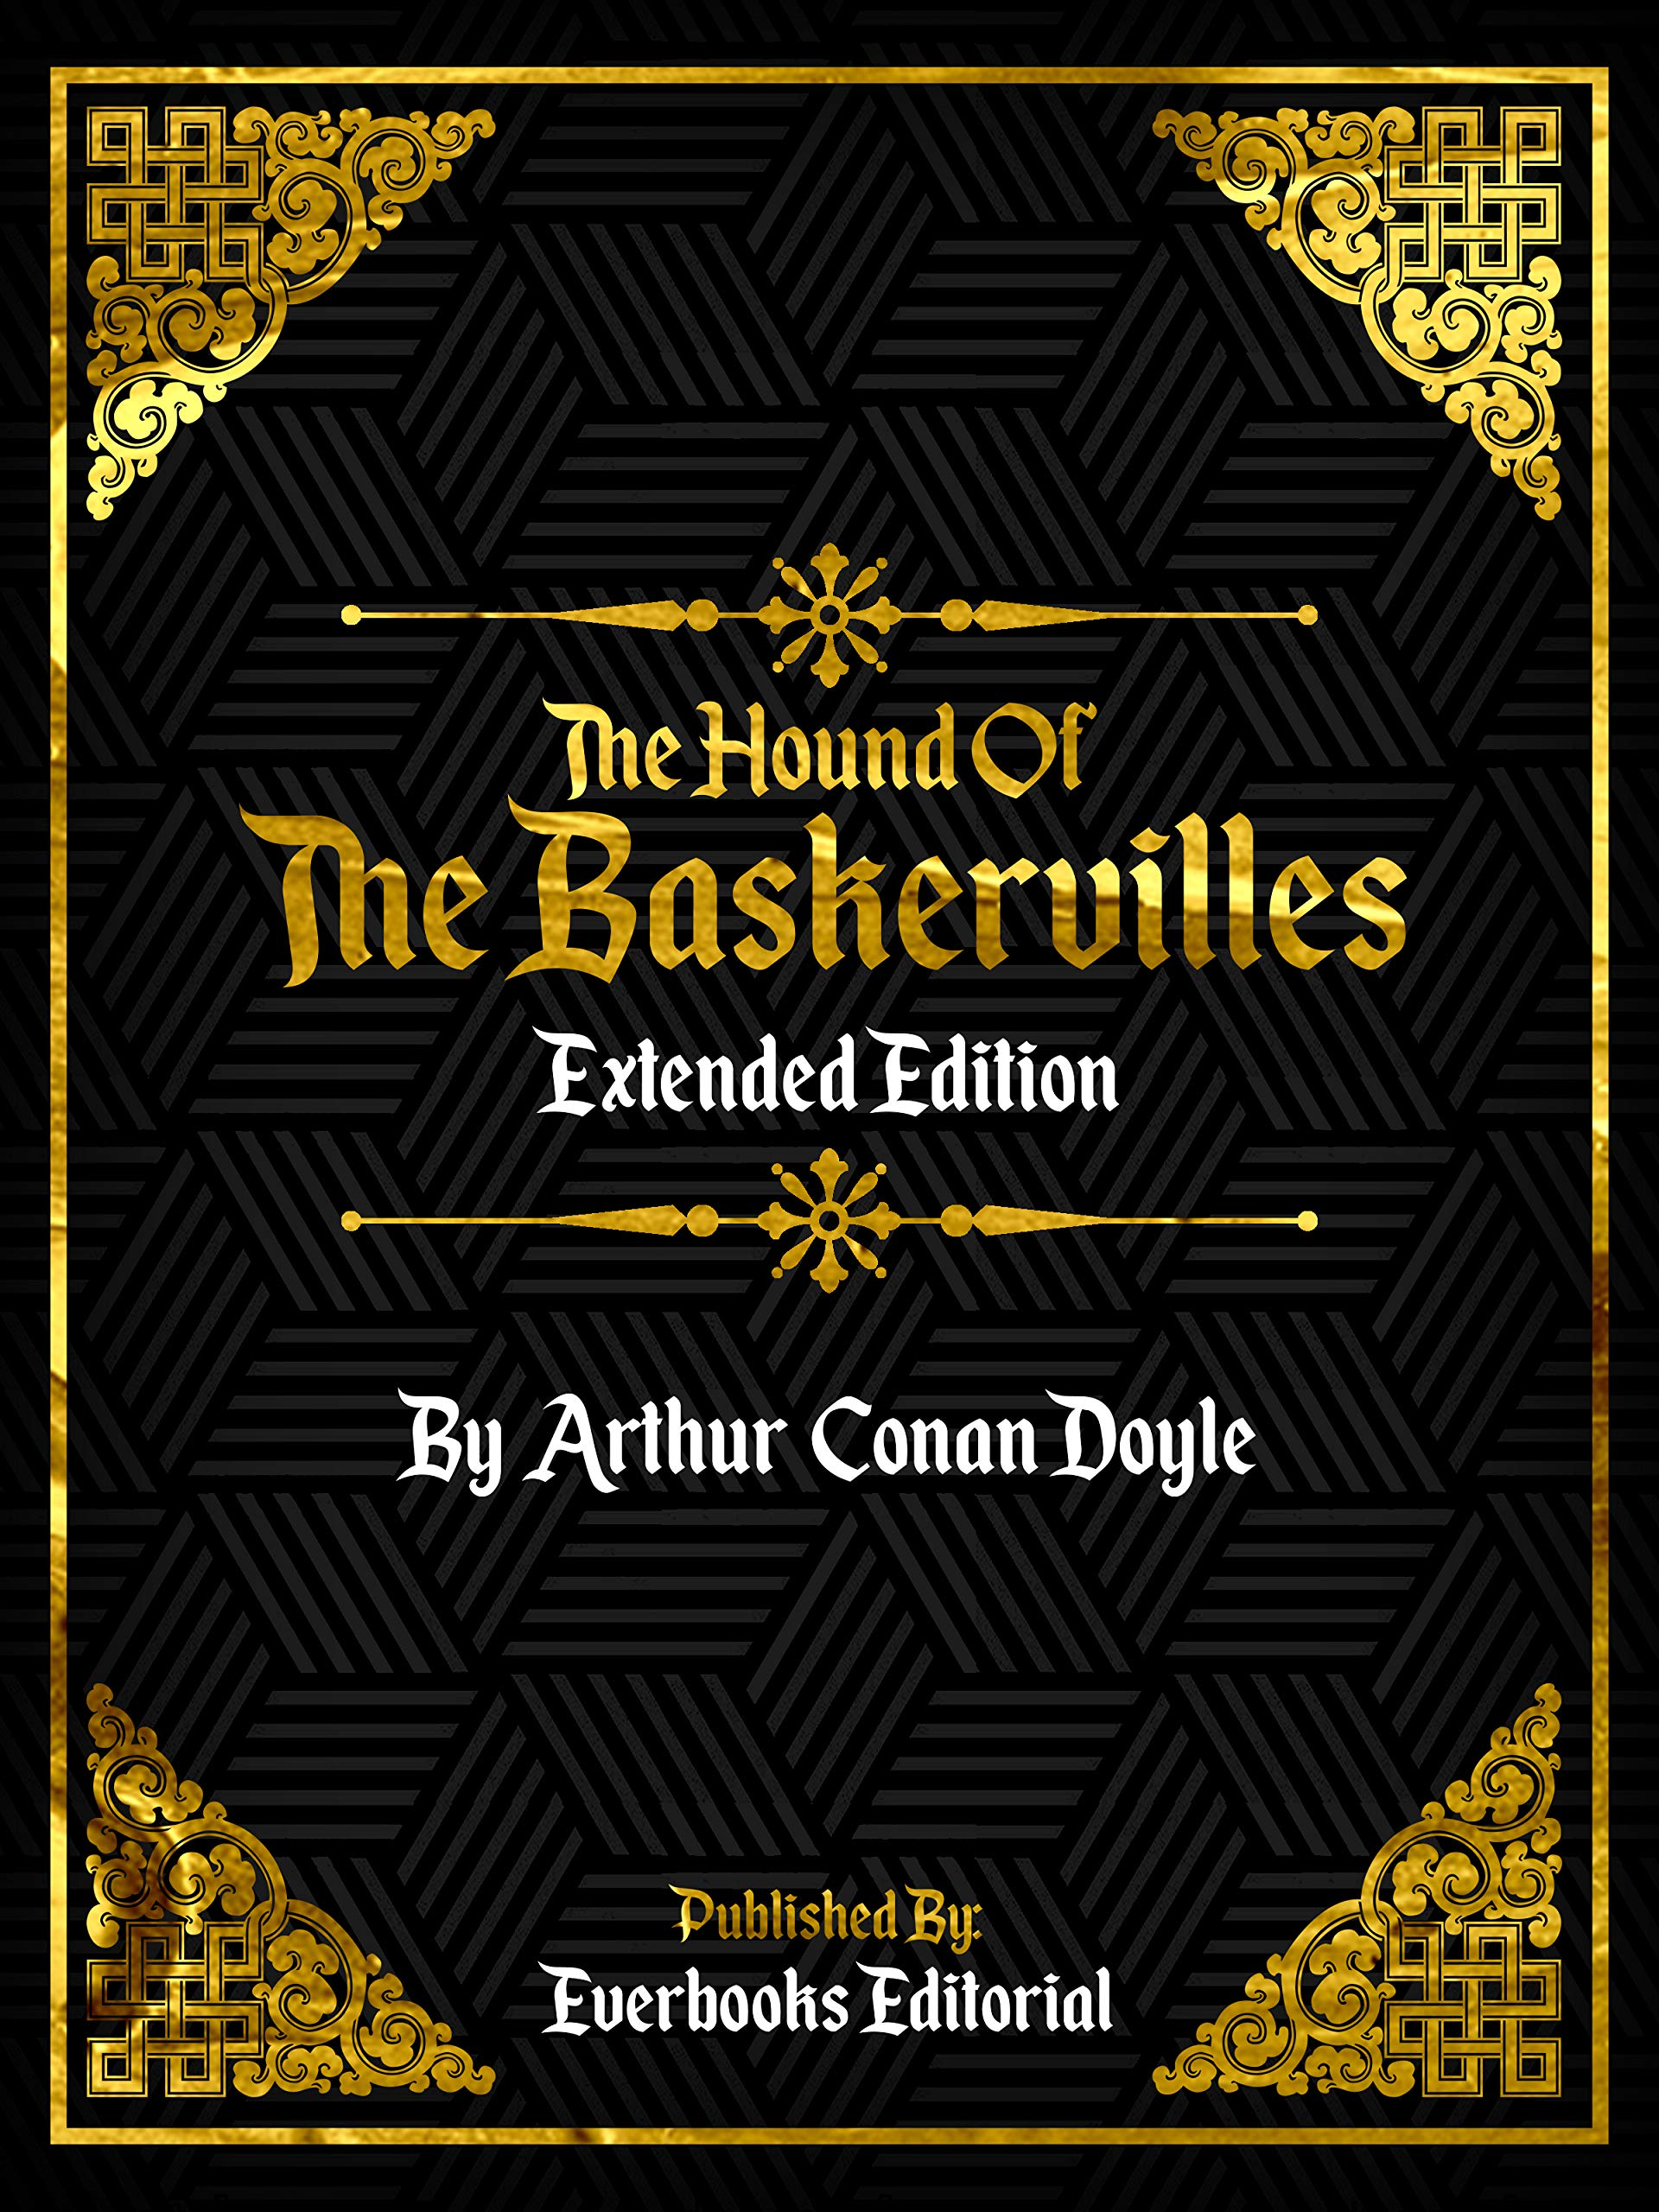 The Hound Of The Baskervilles (Extended Edition) – By Arthur Conan Doyle